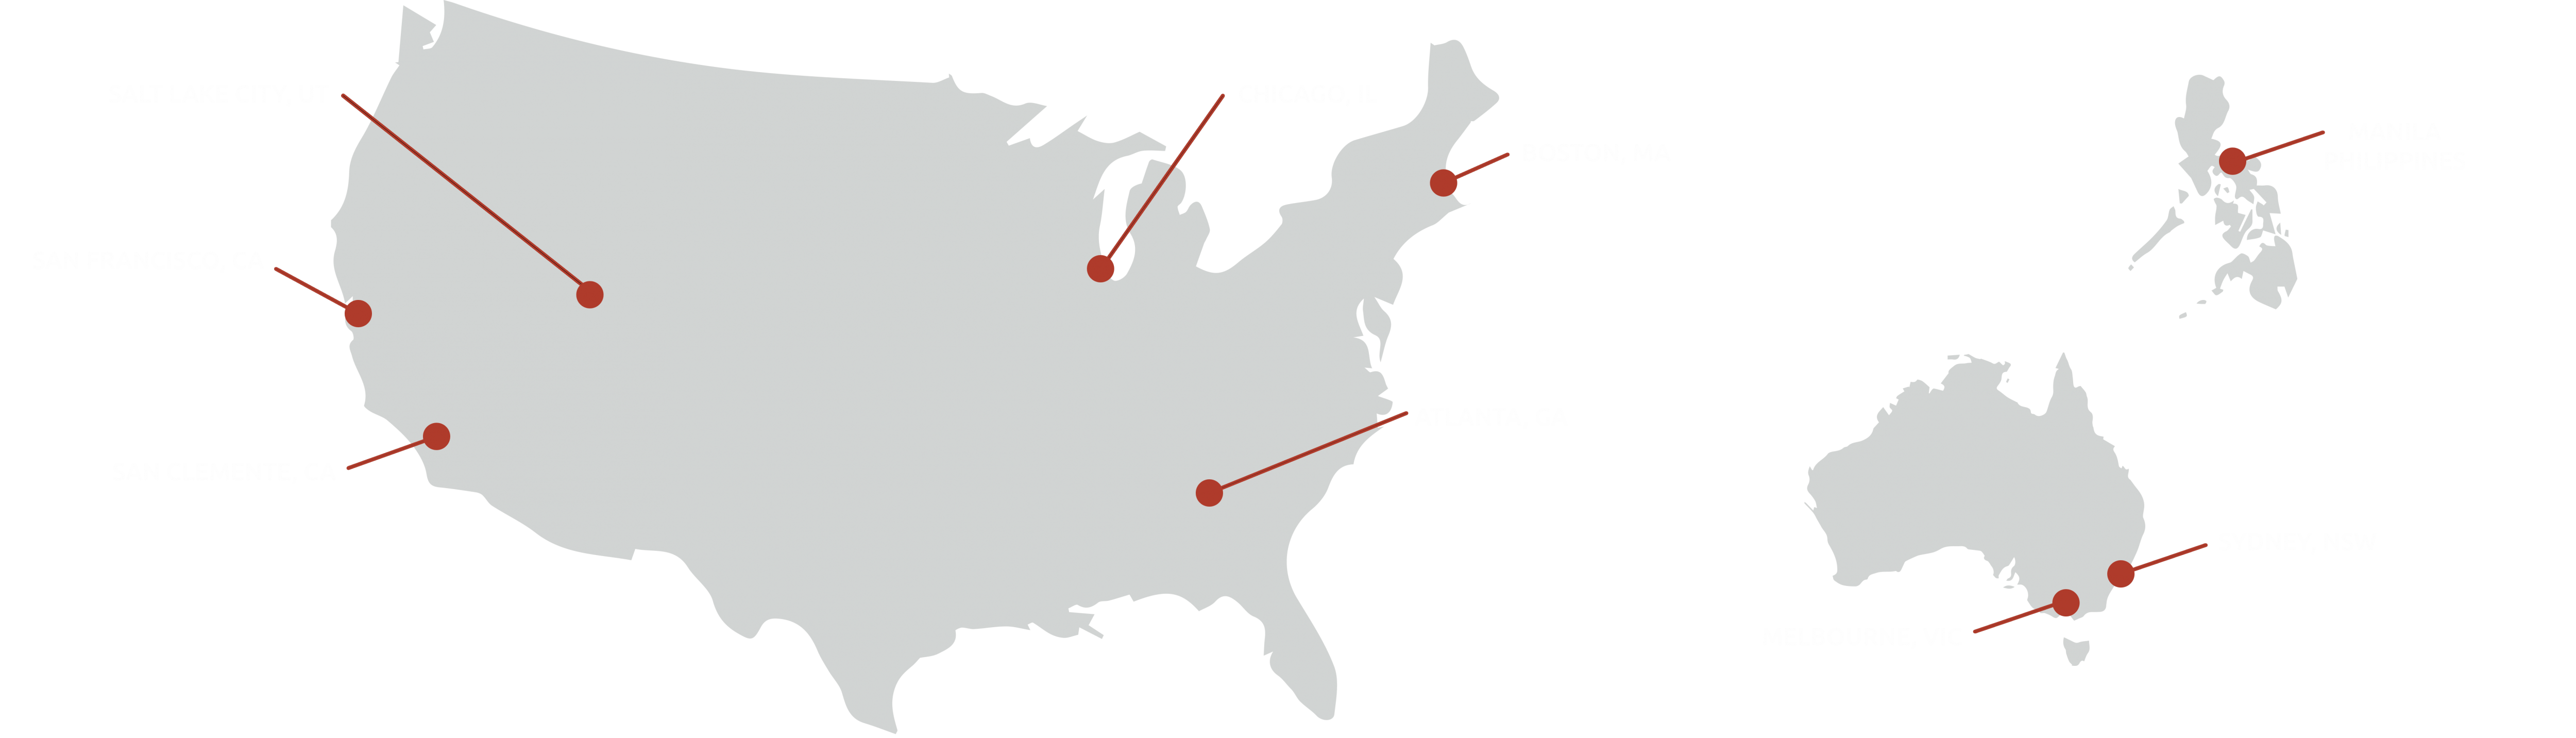 Simplus office locations 2019